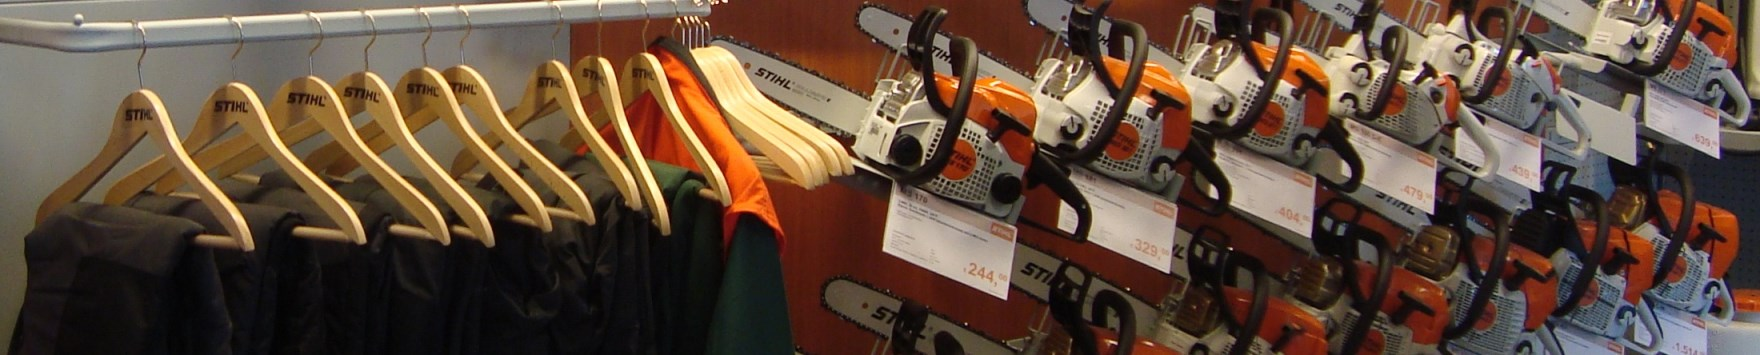 SHOWROOM STIHL (23) WEBSITE SLIDER